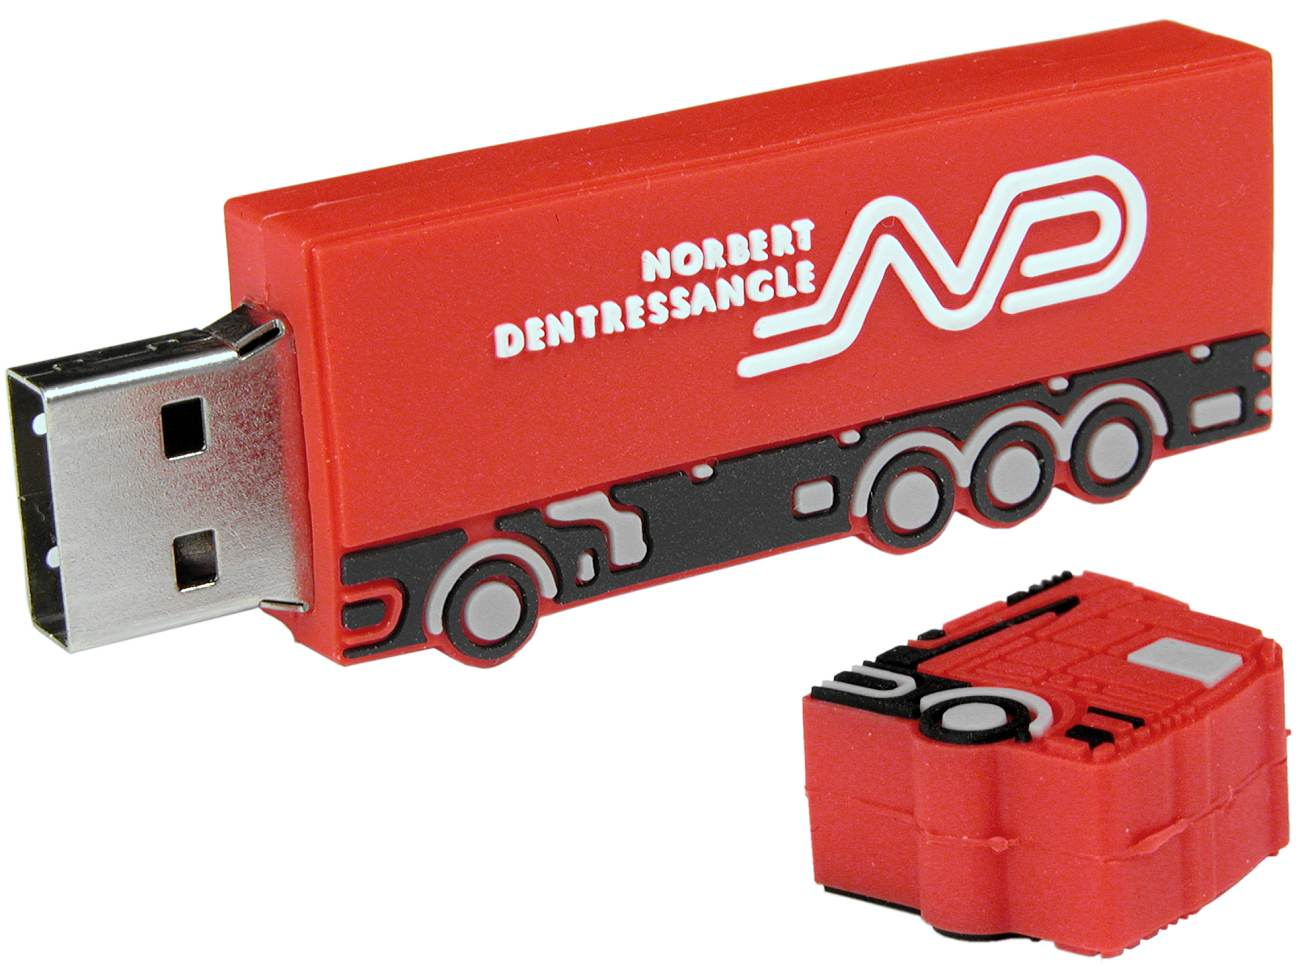 Custom Usb Stick Lorry Cd203